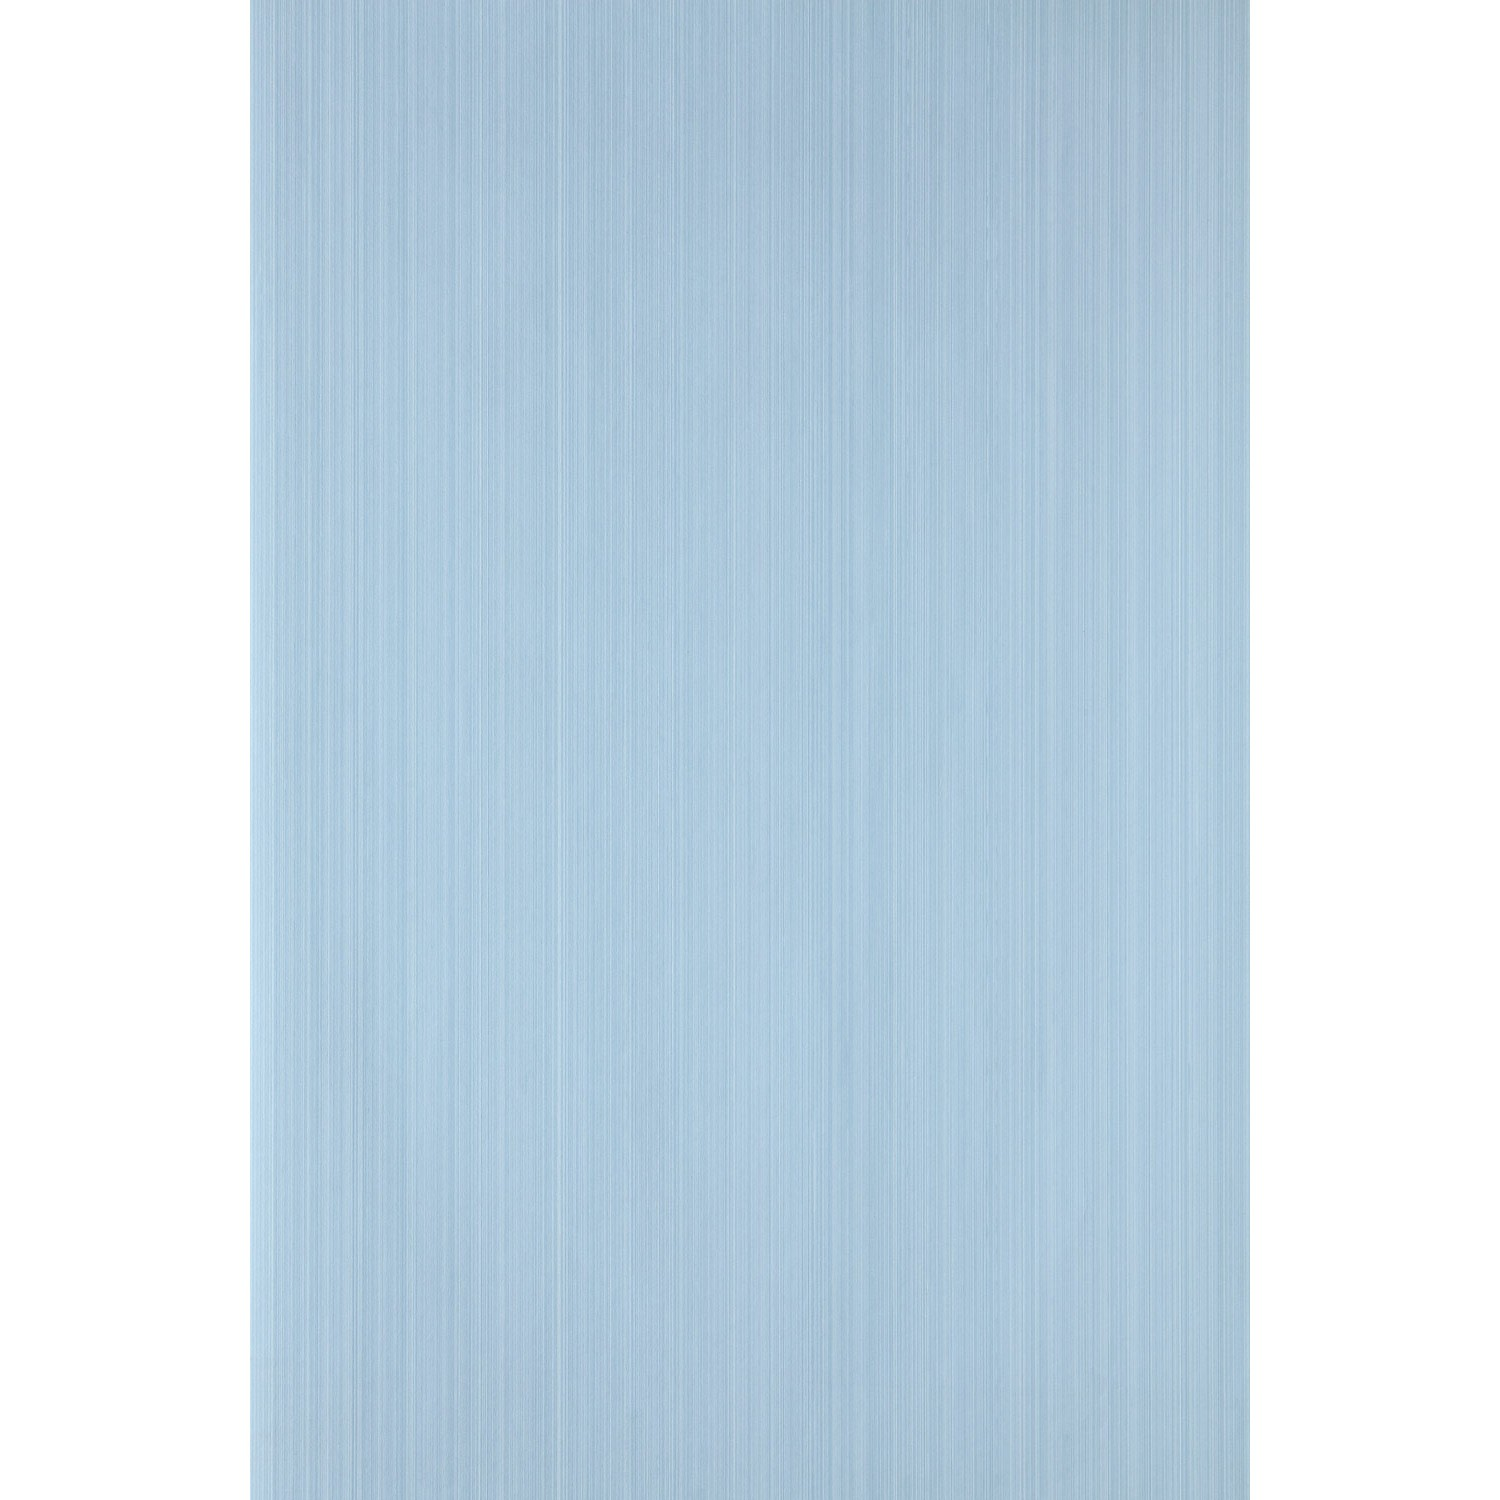 Farrow And Ball Pale Blue Bedroom: Farrow And Ball Dragged Wallpaper 12-68, Light Blue